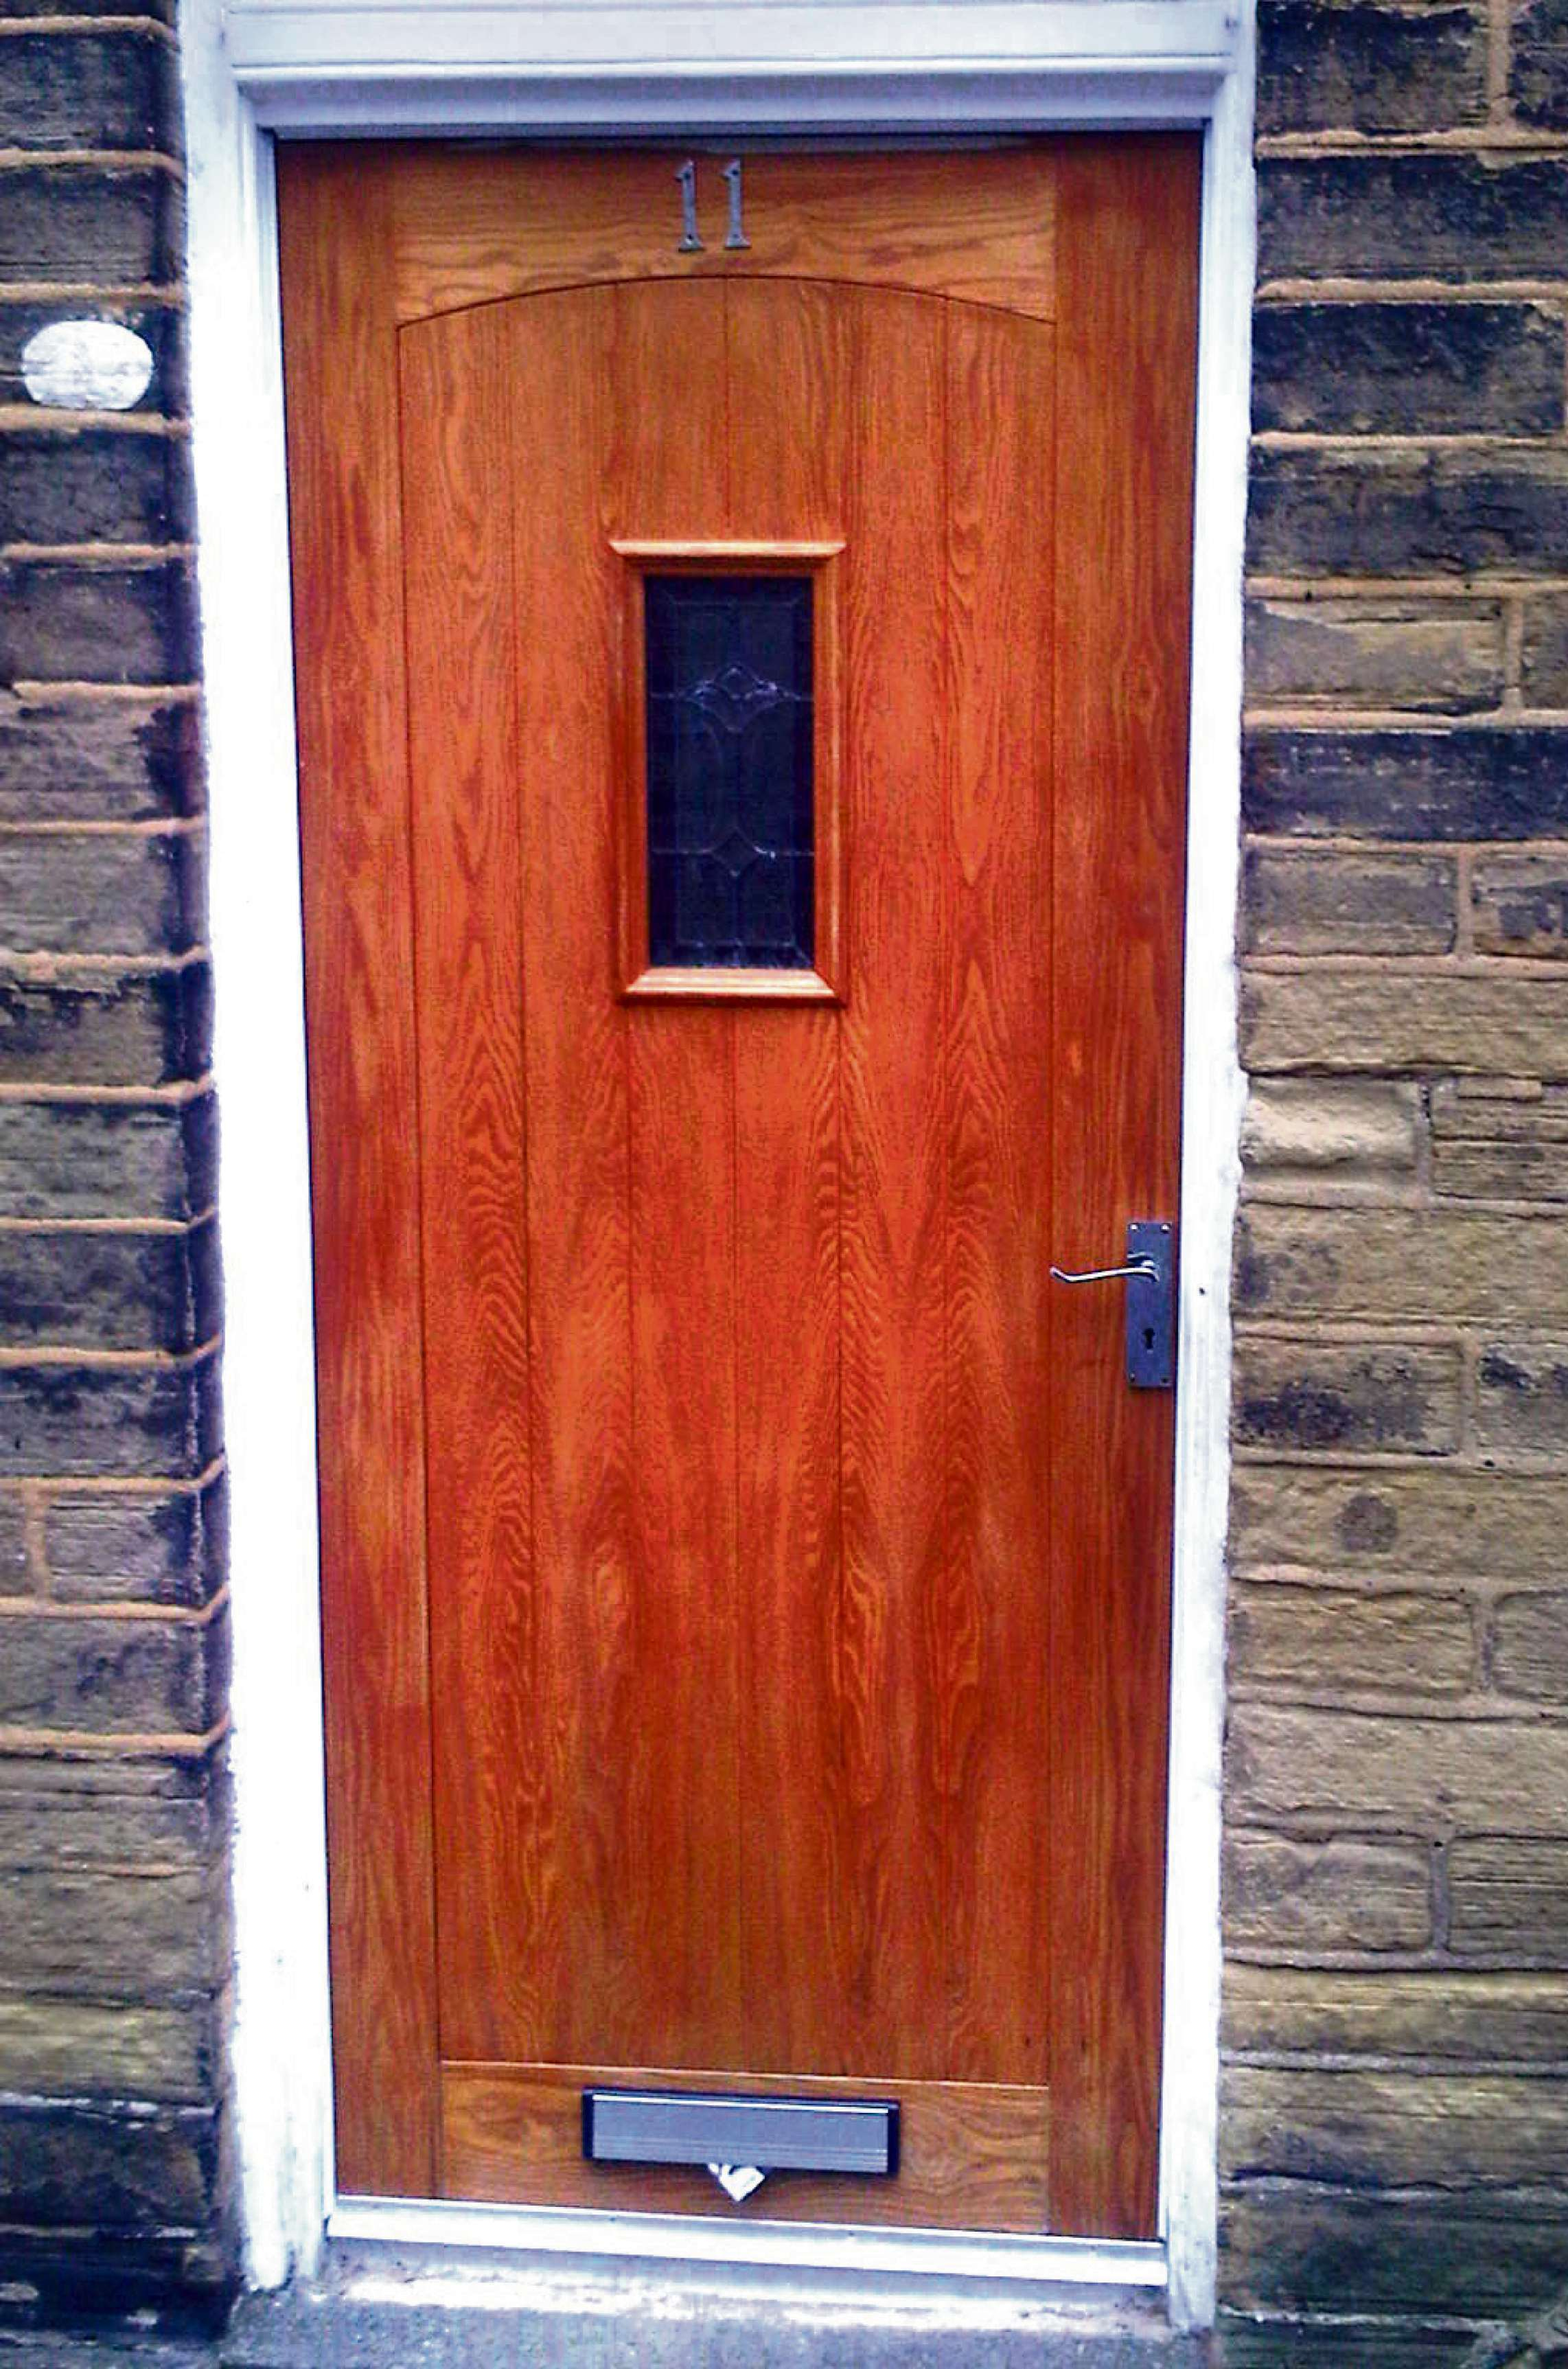 Enforcement warning by Council as it cracks down on 'rogue' front doors fitted to homes in historic Saltaire